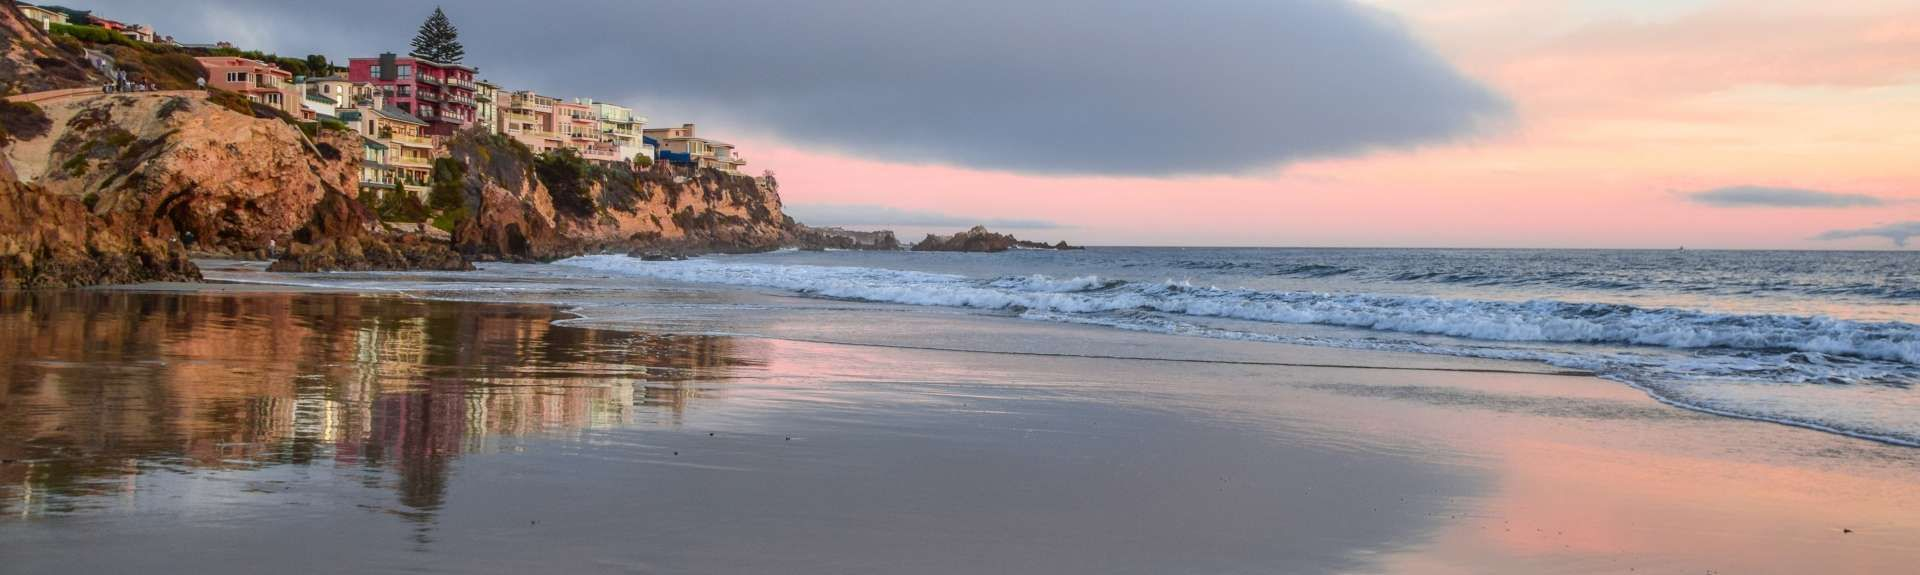 Table Rock Beach, Laguna Beach, CA, USA